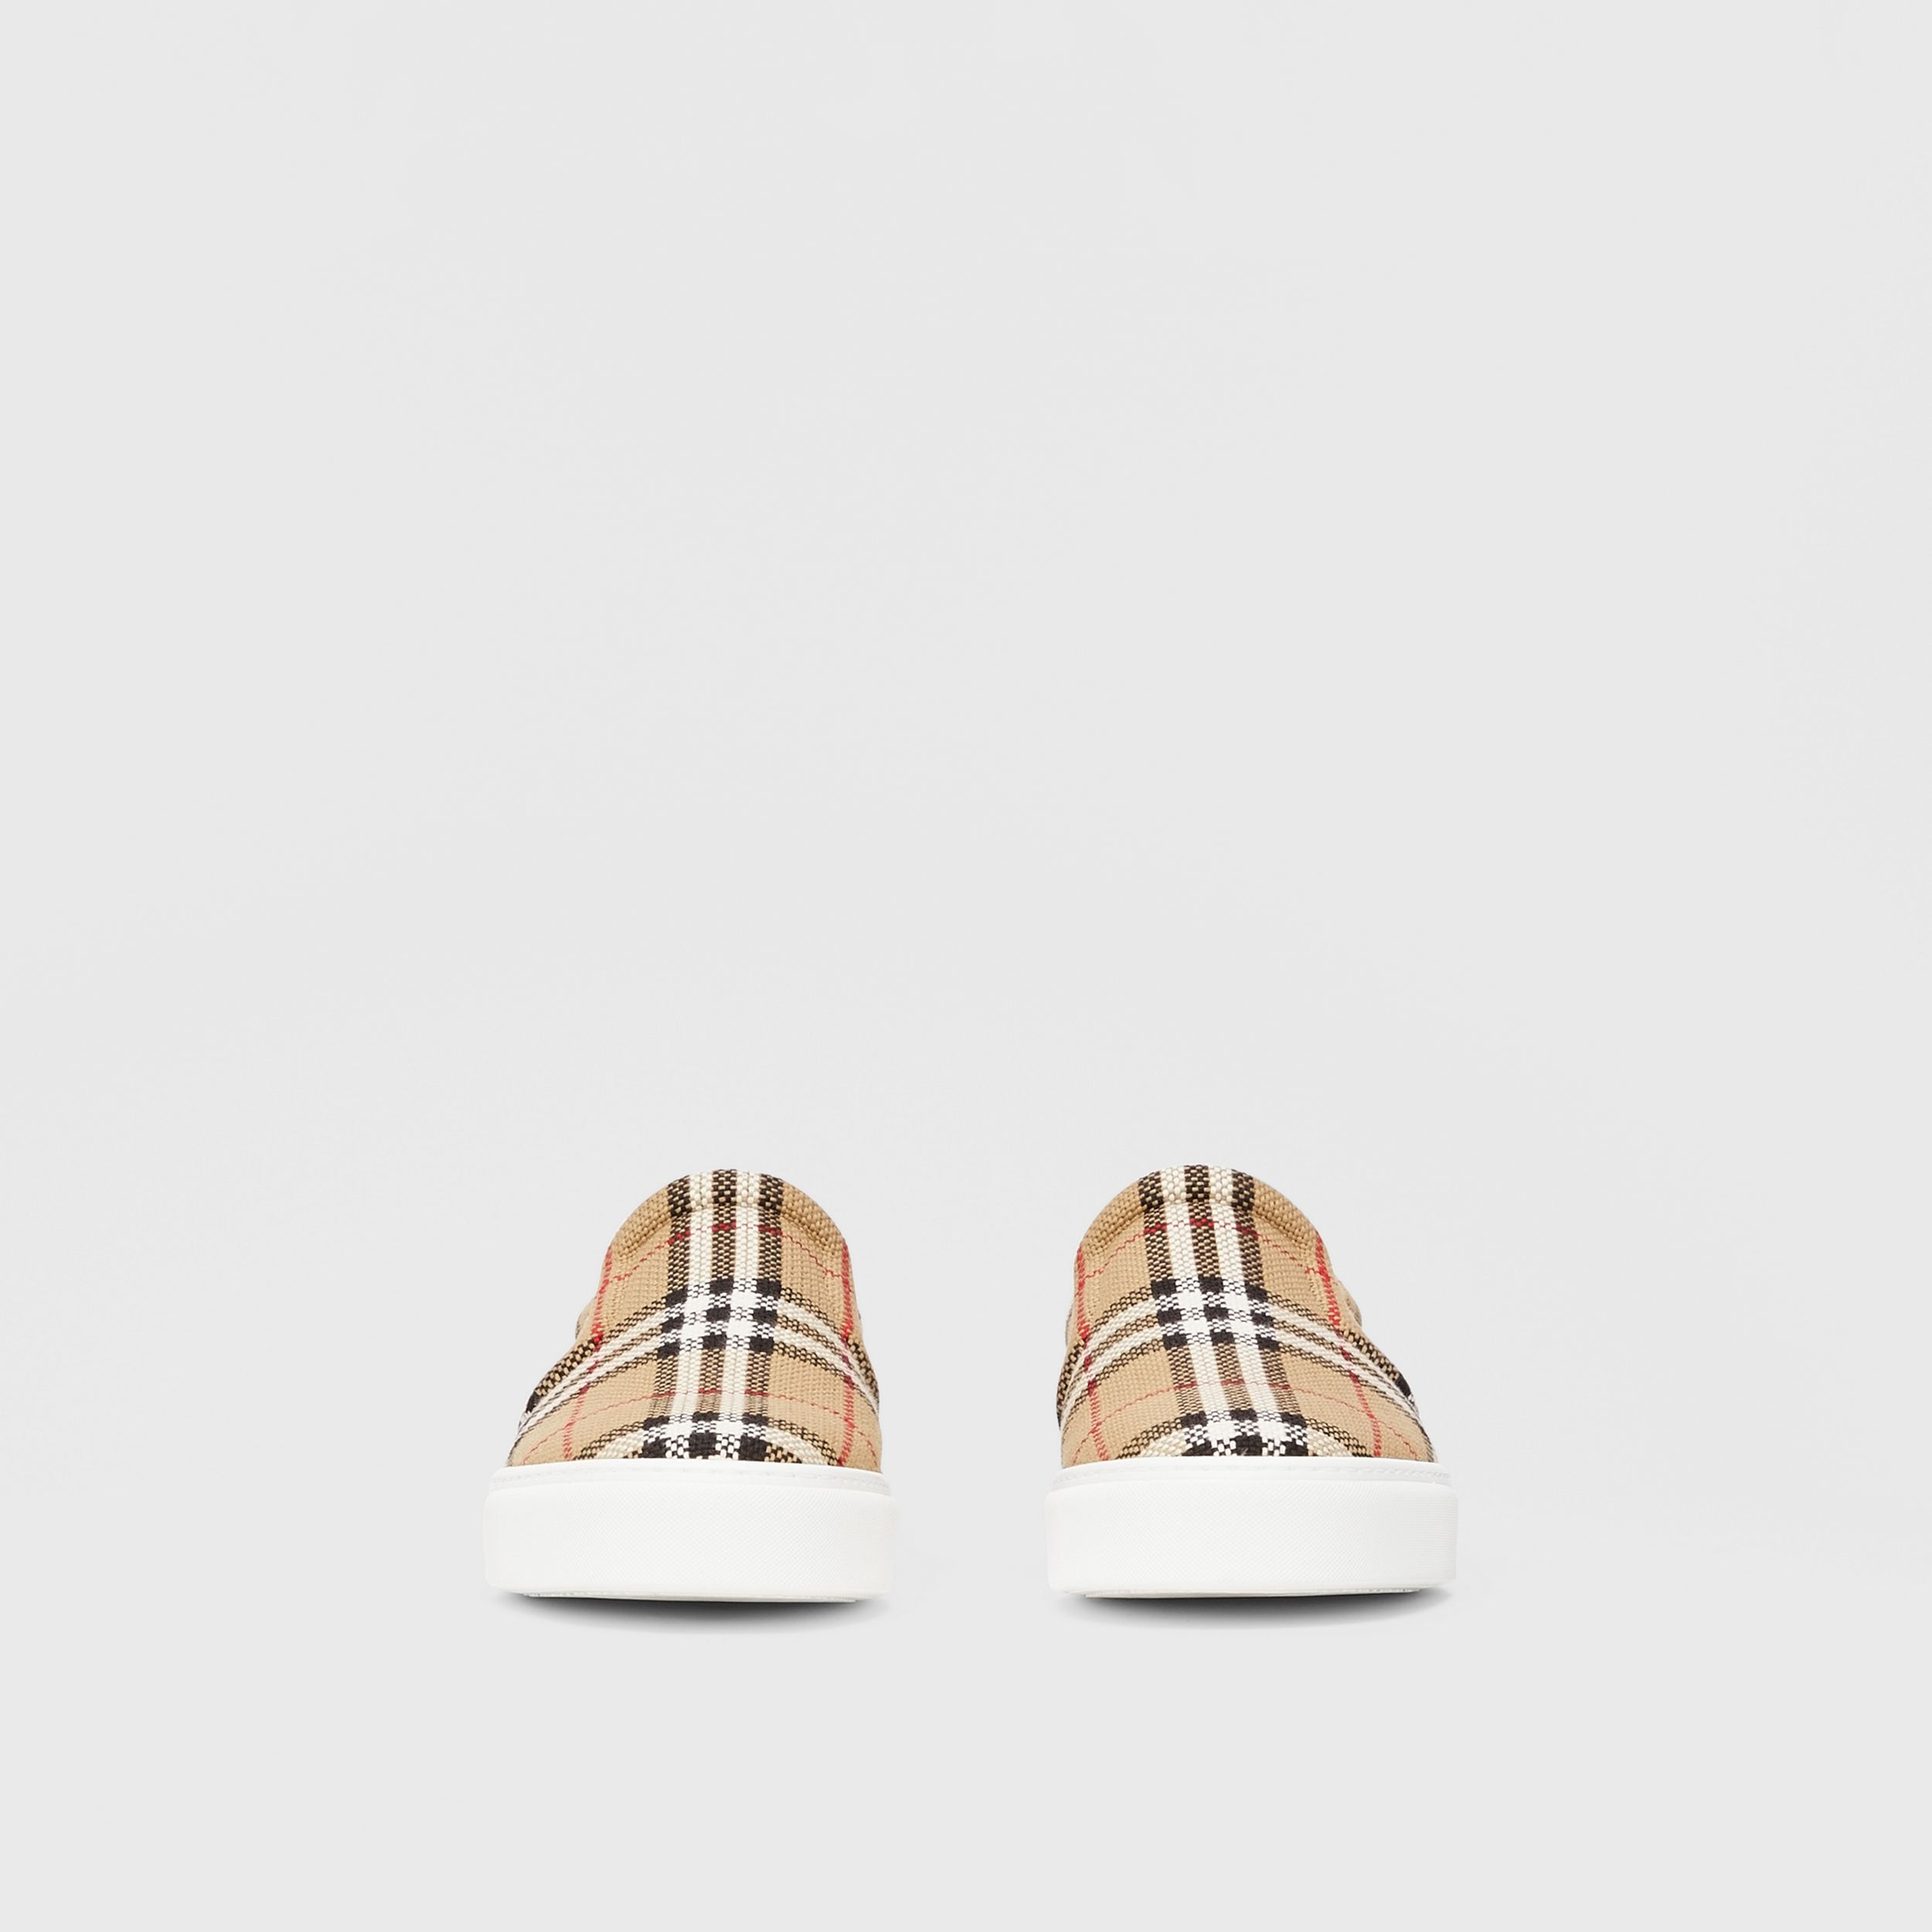 Bio-based Sole Latticed Cotton Slip-on Sneakers in Archive Beige - Men | Burberry - 4